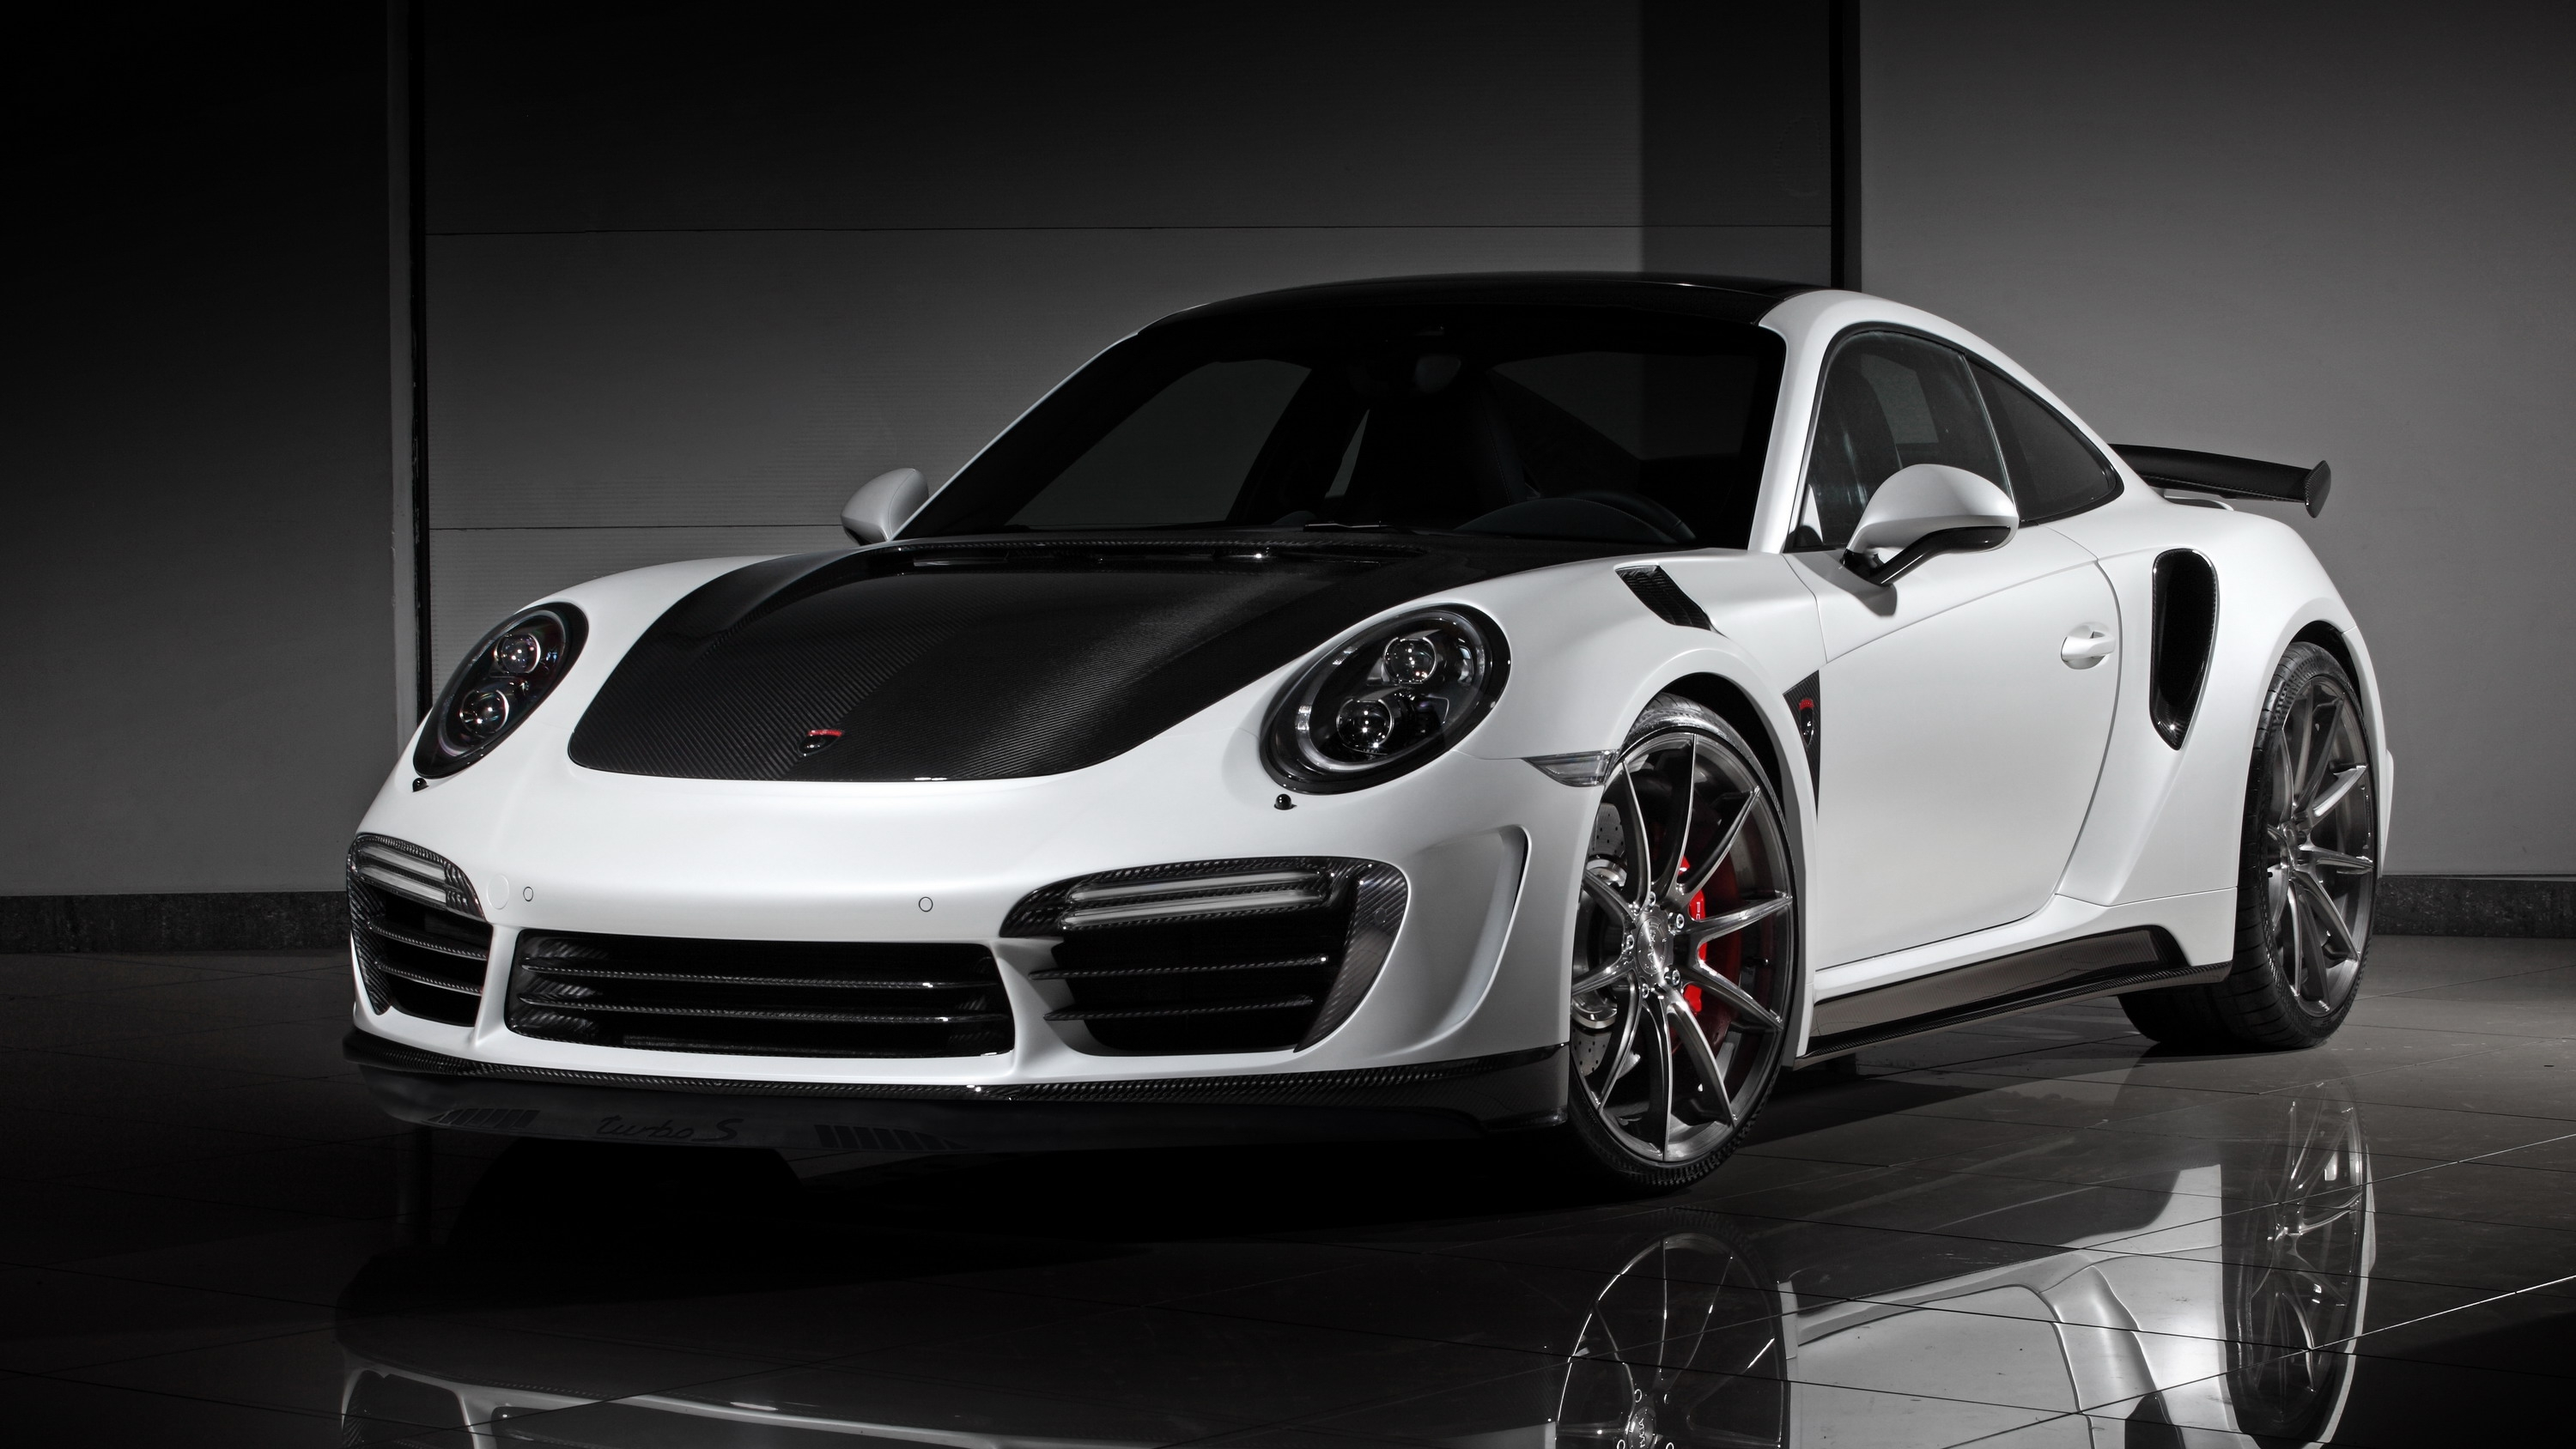 2016 Porsche 911 Turbo S Stinger Gt3 Gen 2 By Top Car